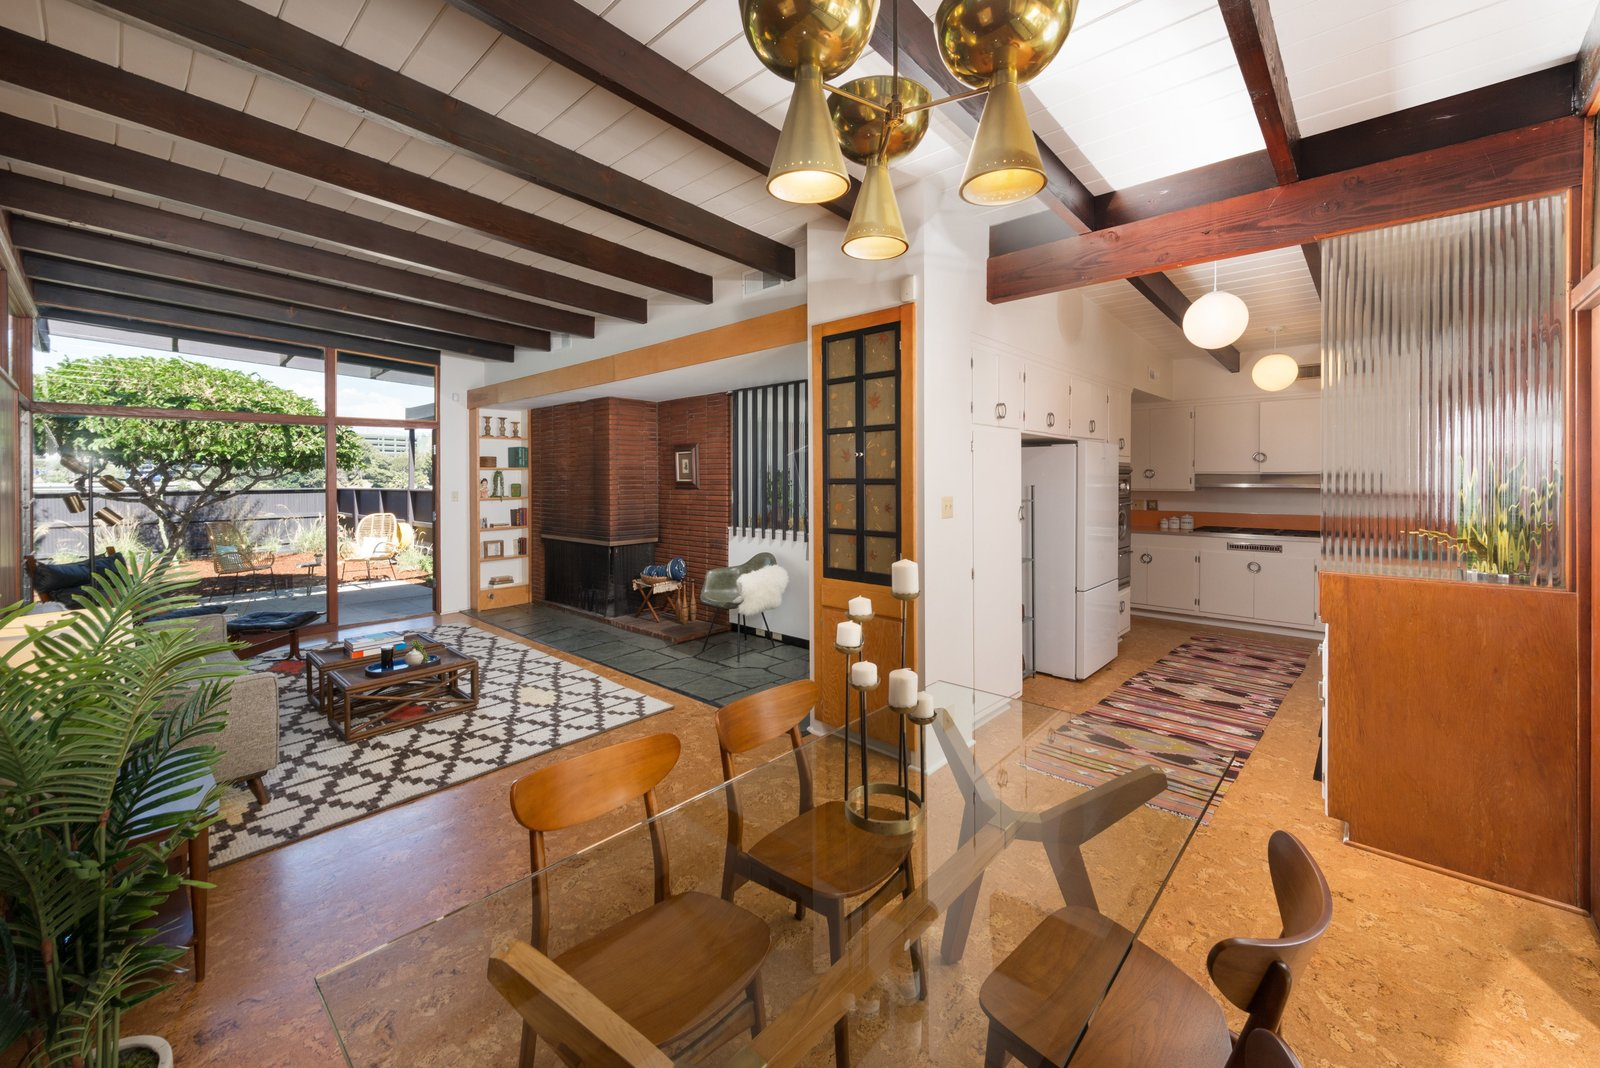 Dining Room, Table, Wood Burning Fireplace, Accent Lighting, Chair, Cork Floor, and Corner Fireplace The kitchen is just off the dining area.  Photo 9 of 17 in Snag This Hollywood Hills Midcentury Home For $1M